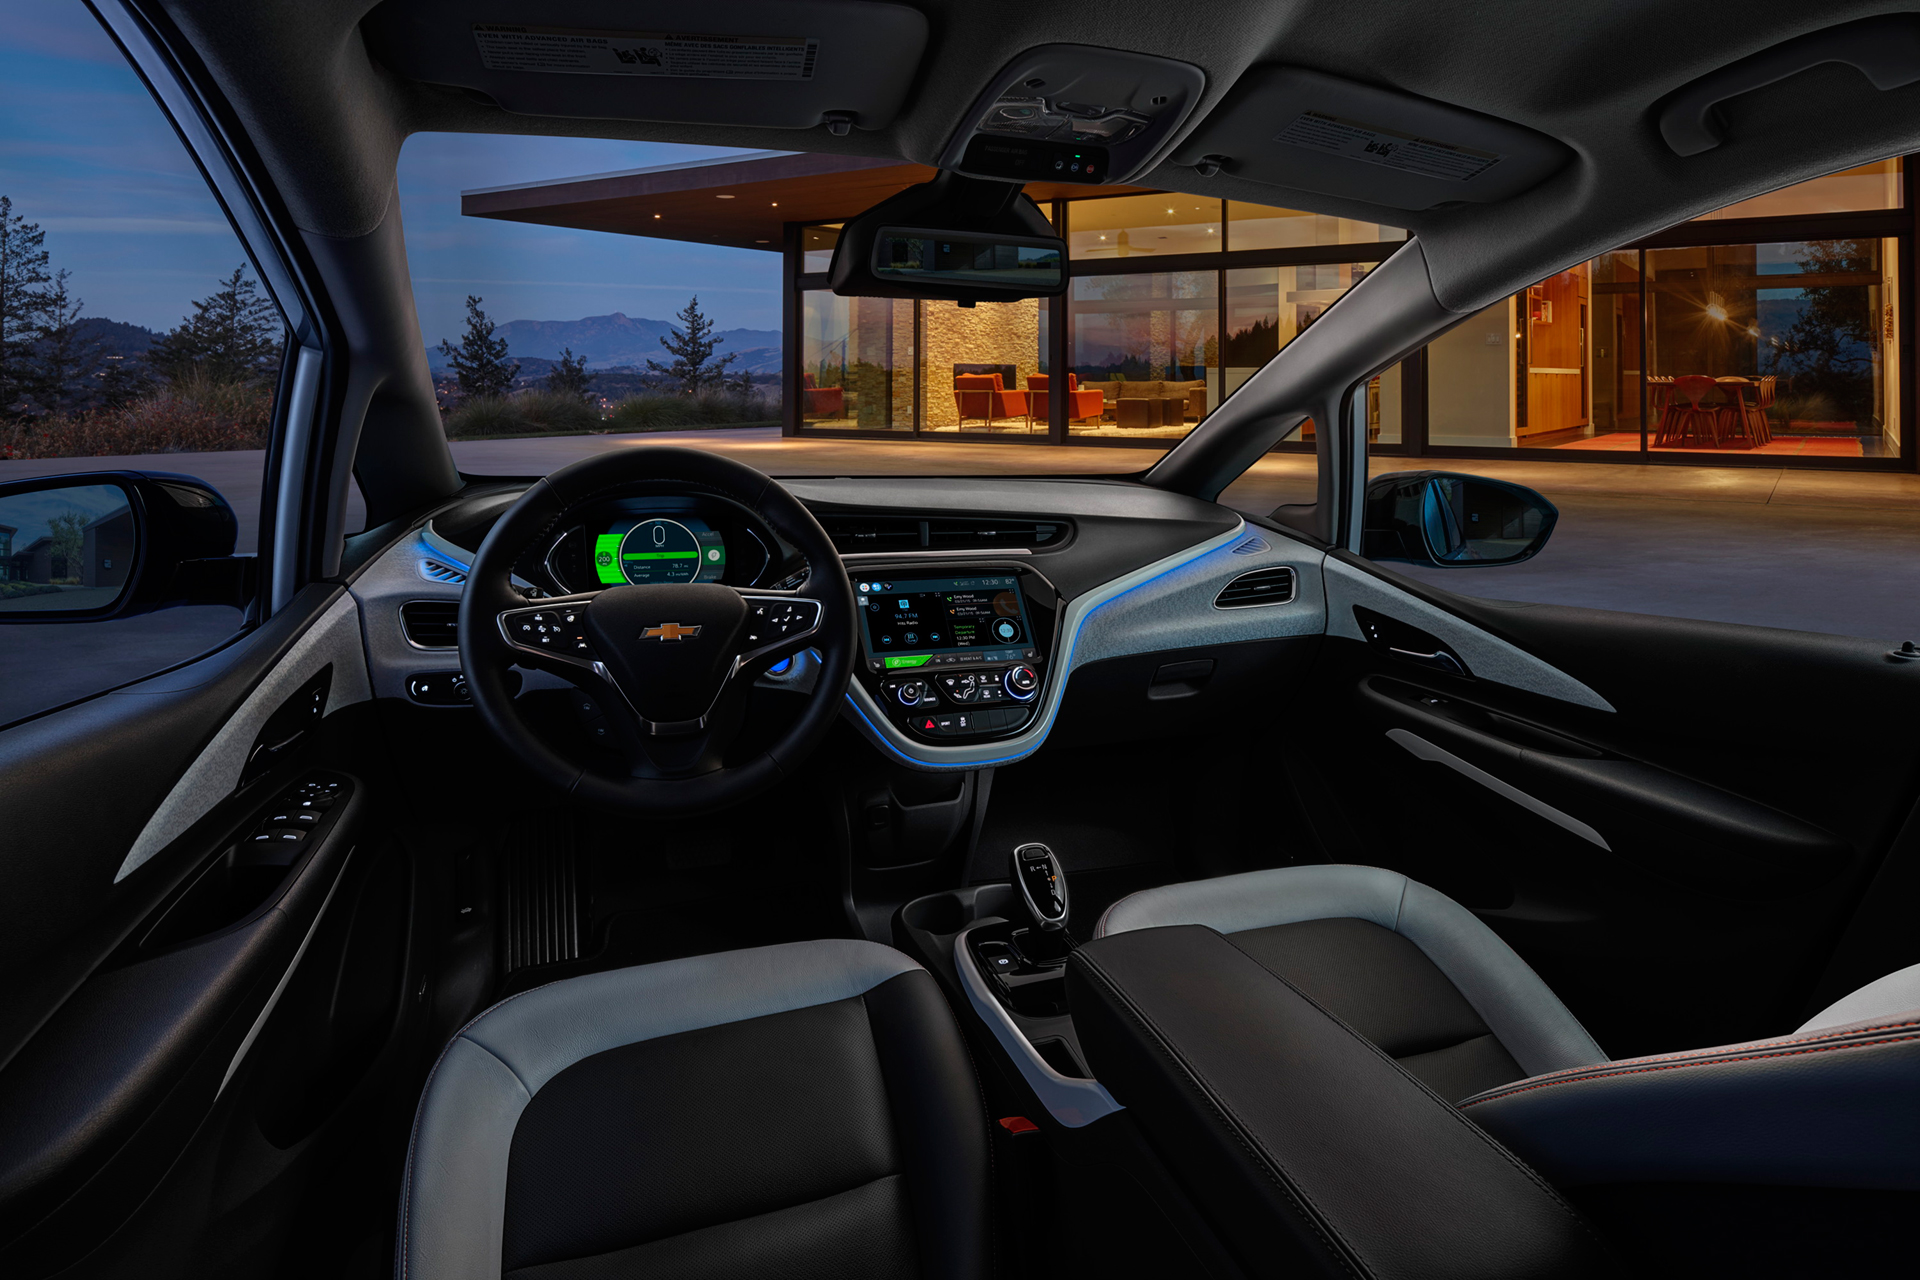 Chevrolet Bolt EV - 2016 - interior / intérieur - General Motors